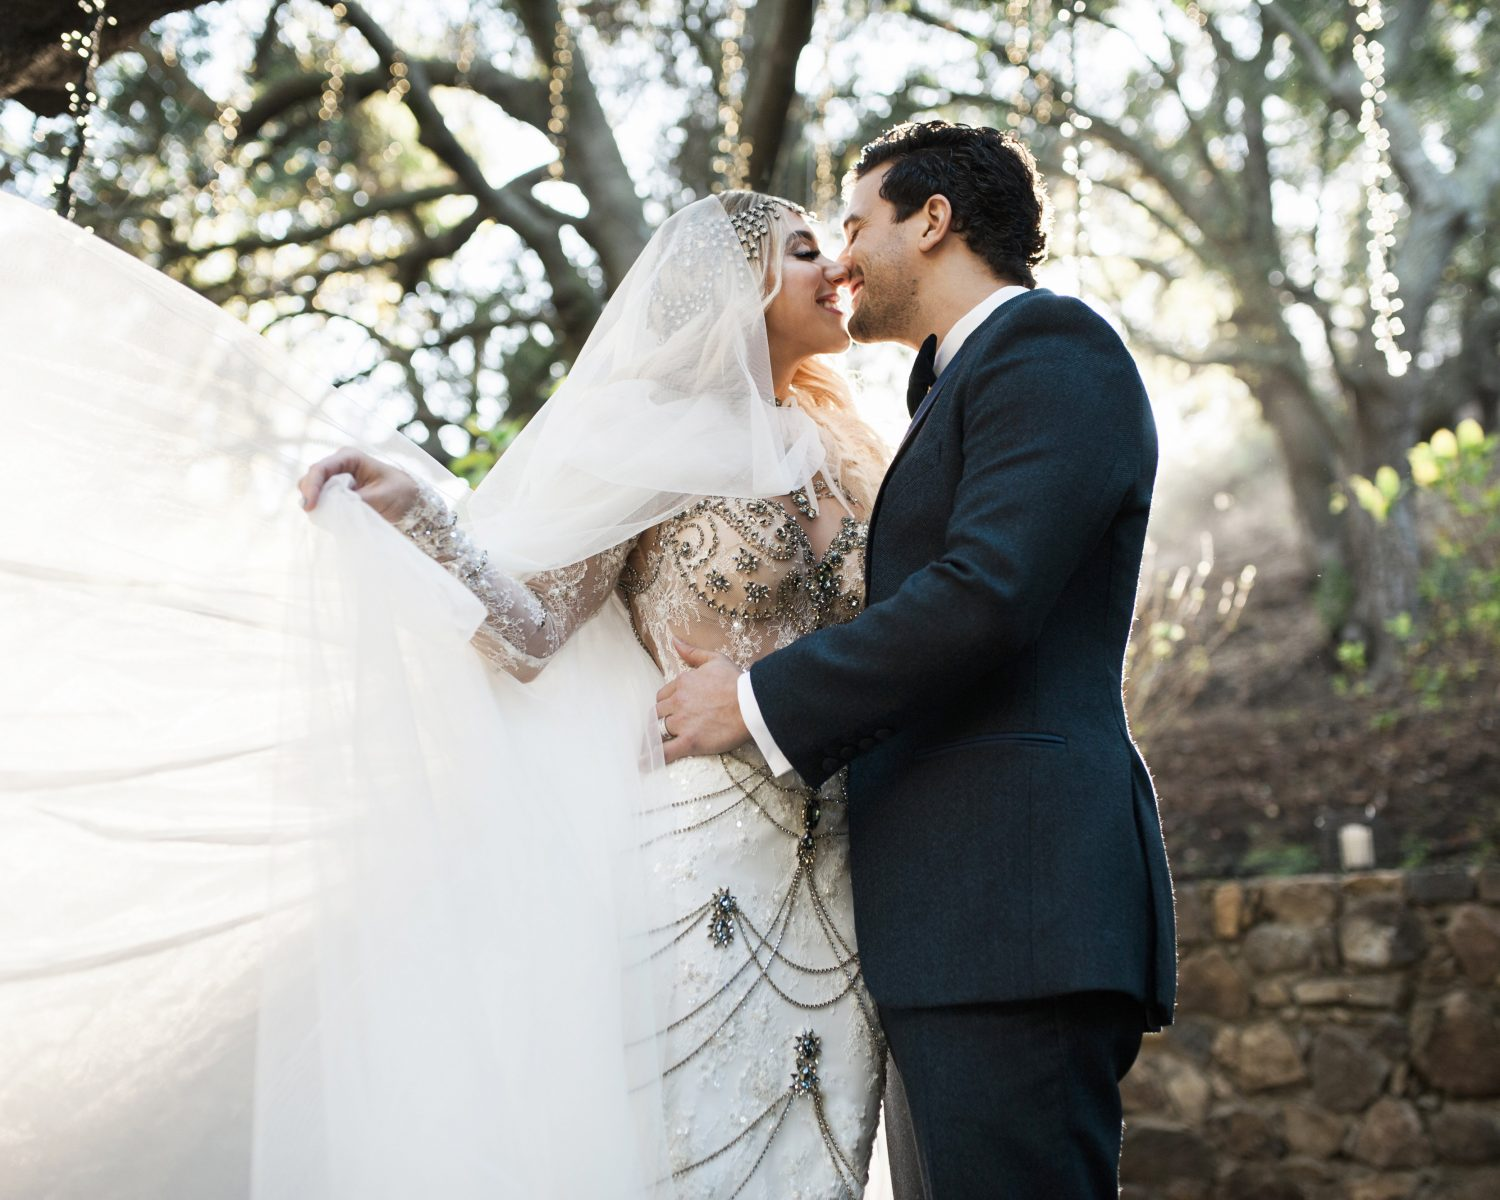 Mark Ballas Wedding Vows Inspired His Song Paper Planes Video